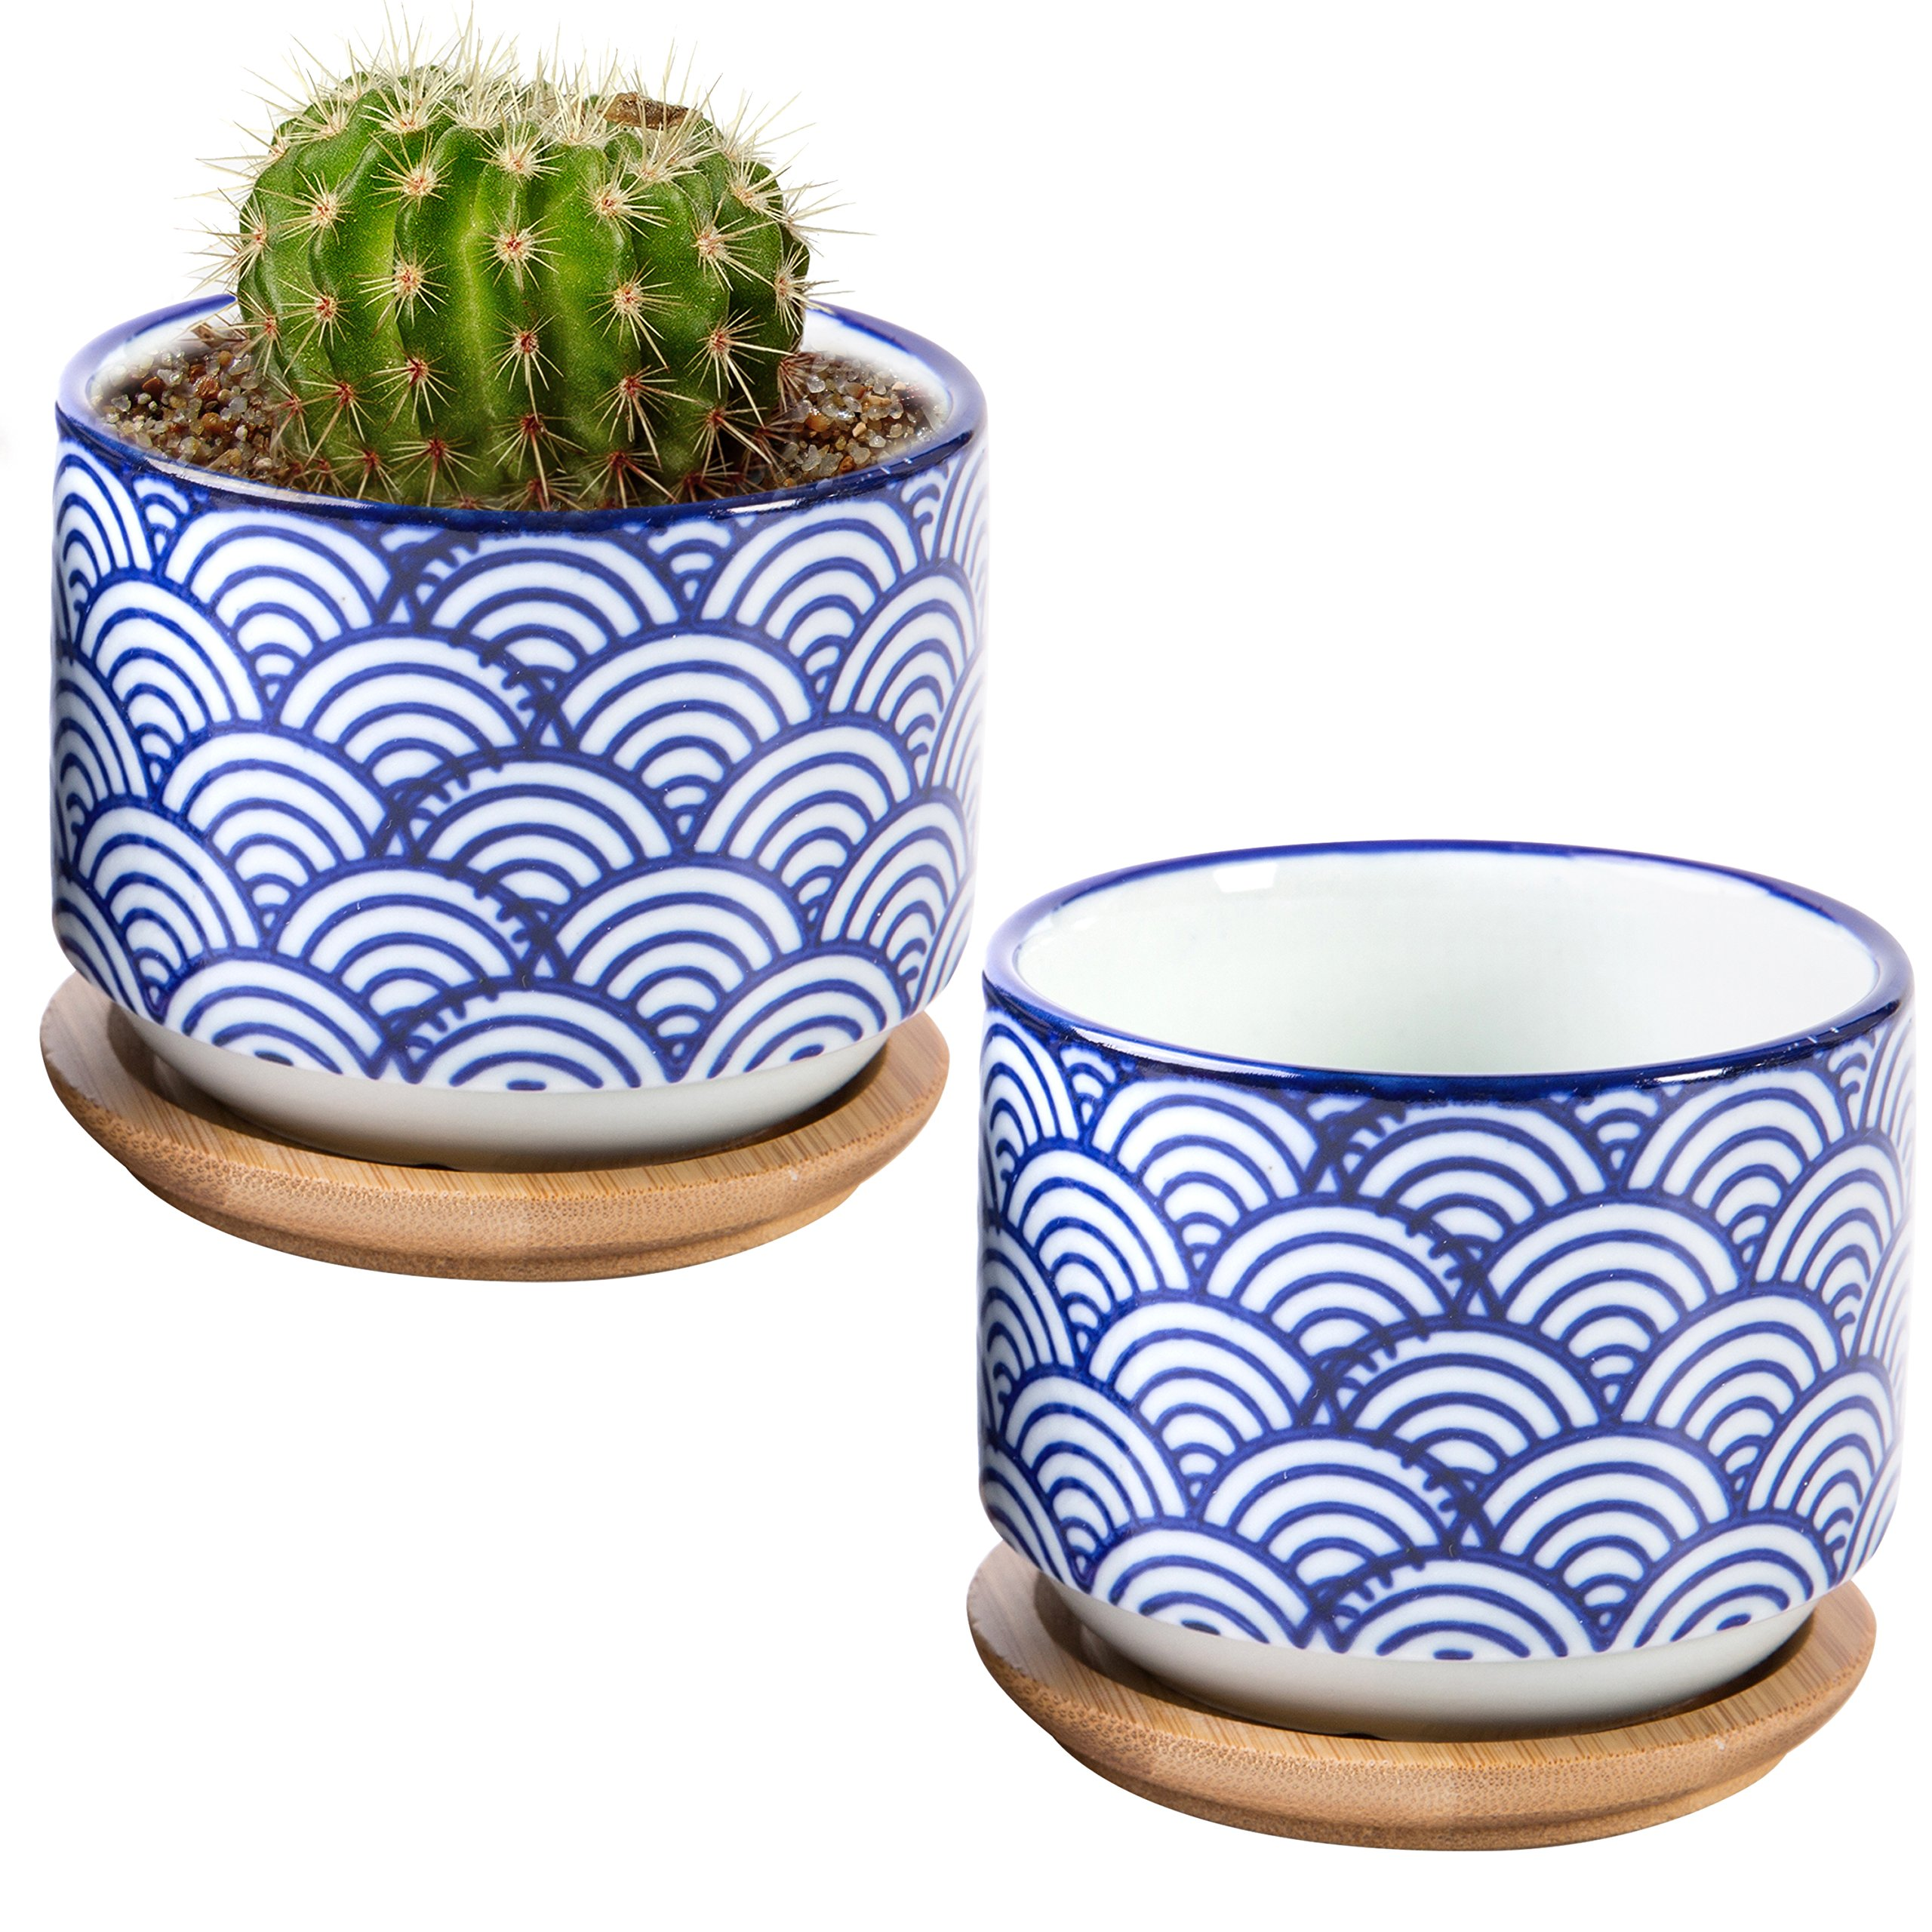 3 inch Japanese Style Wave Ceramic Succulent Planter Pots with Bamboo Drip Tray, Set of 2, White & Blue by MyGift